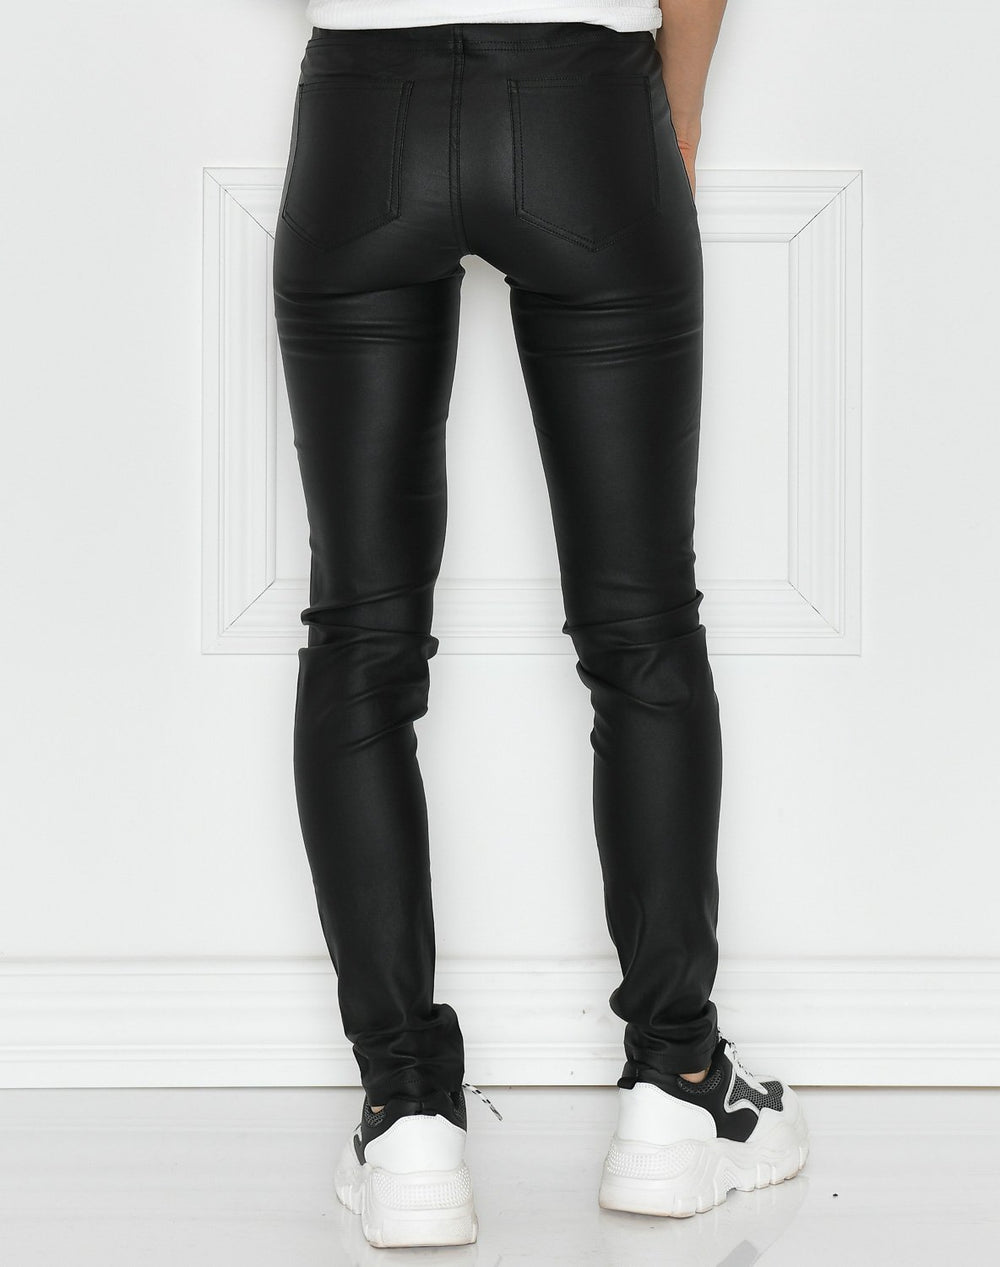 Kaffe Ada coated zip jeggings black deep - Online-Mode